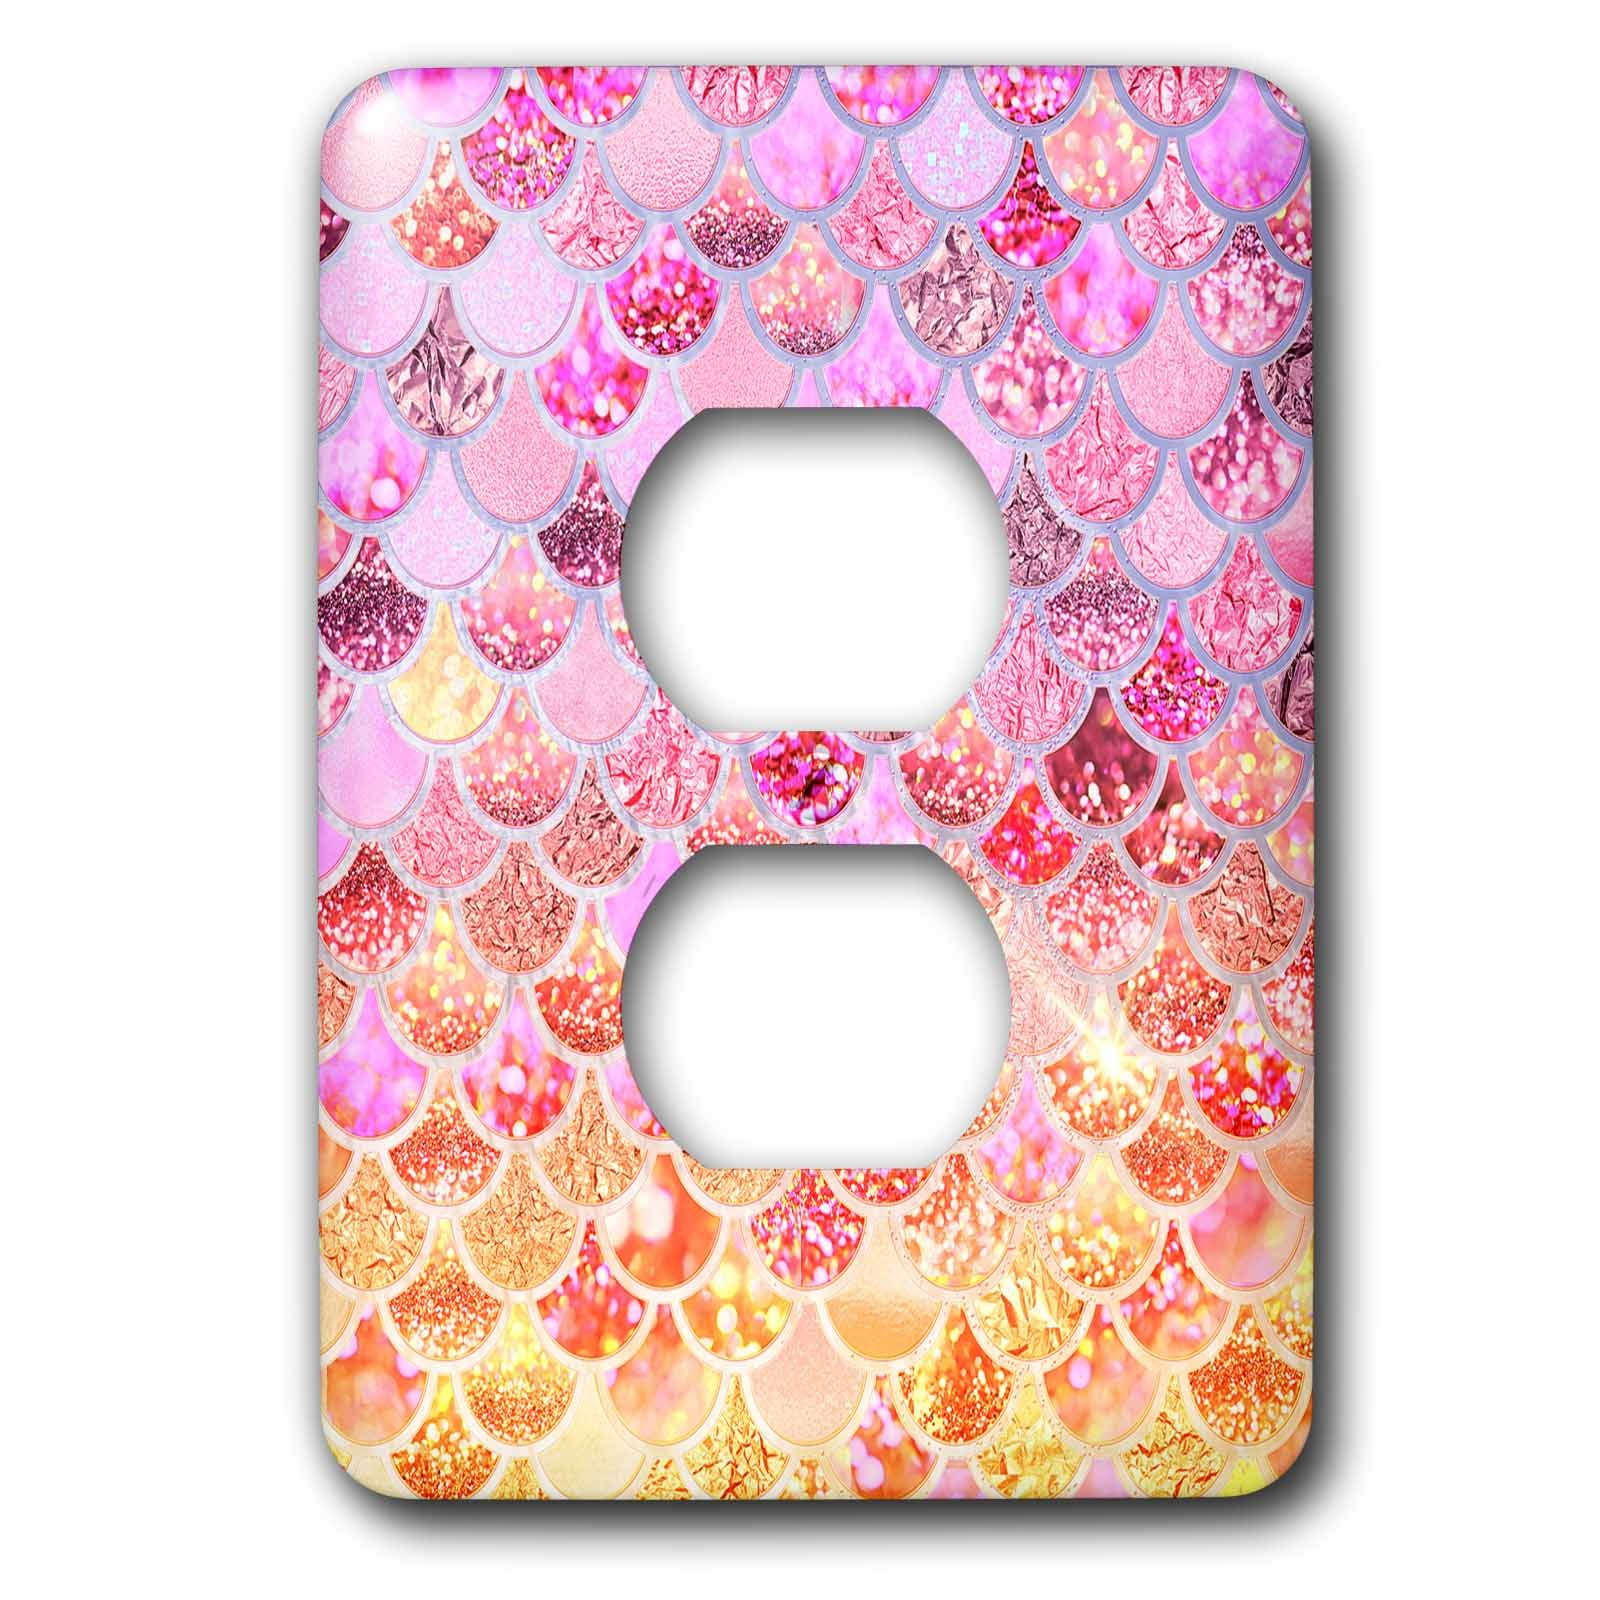 3dRose Uta Naumann Faux Glitter Pattern - Image of Pink Gold Shiny Luxury Elegant Mermaid Scales Glitter - Light Switch Covers - 2 plug outlet cover (lsp_275452_6)